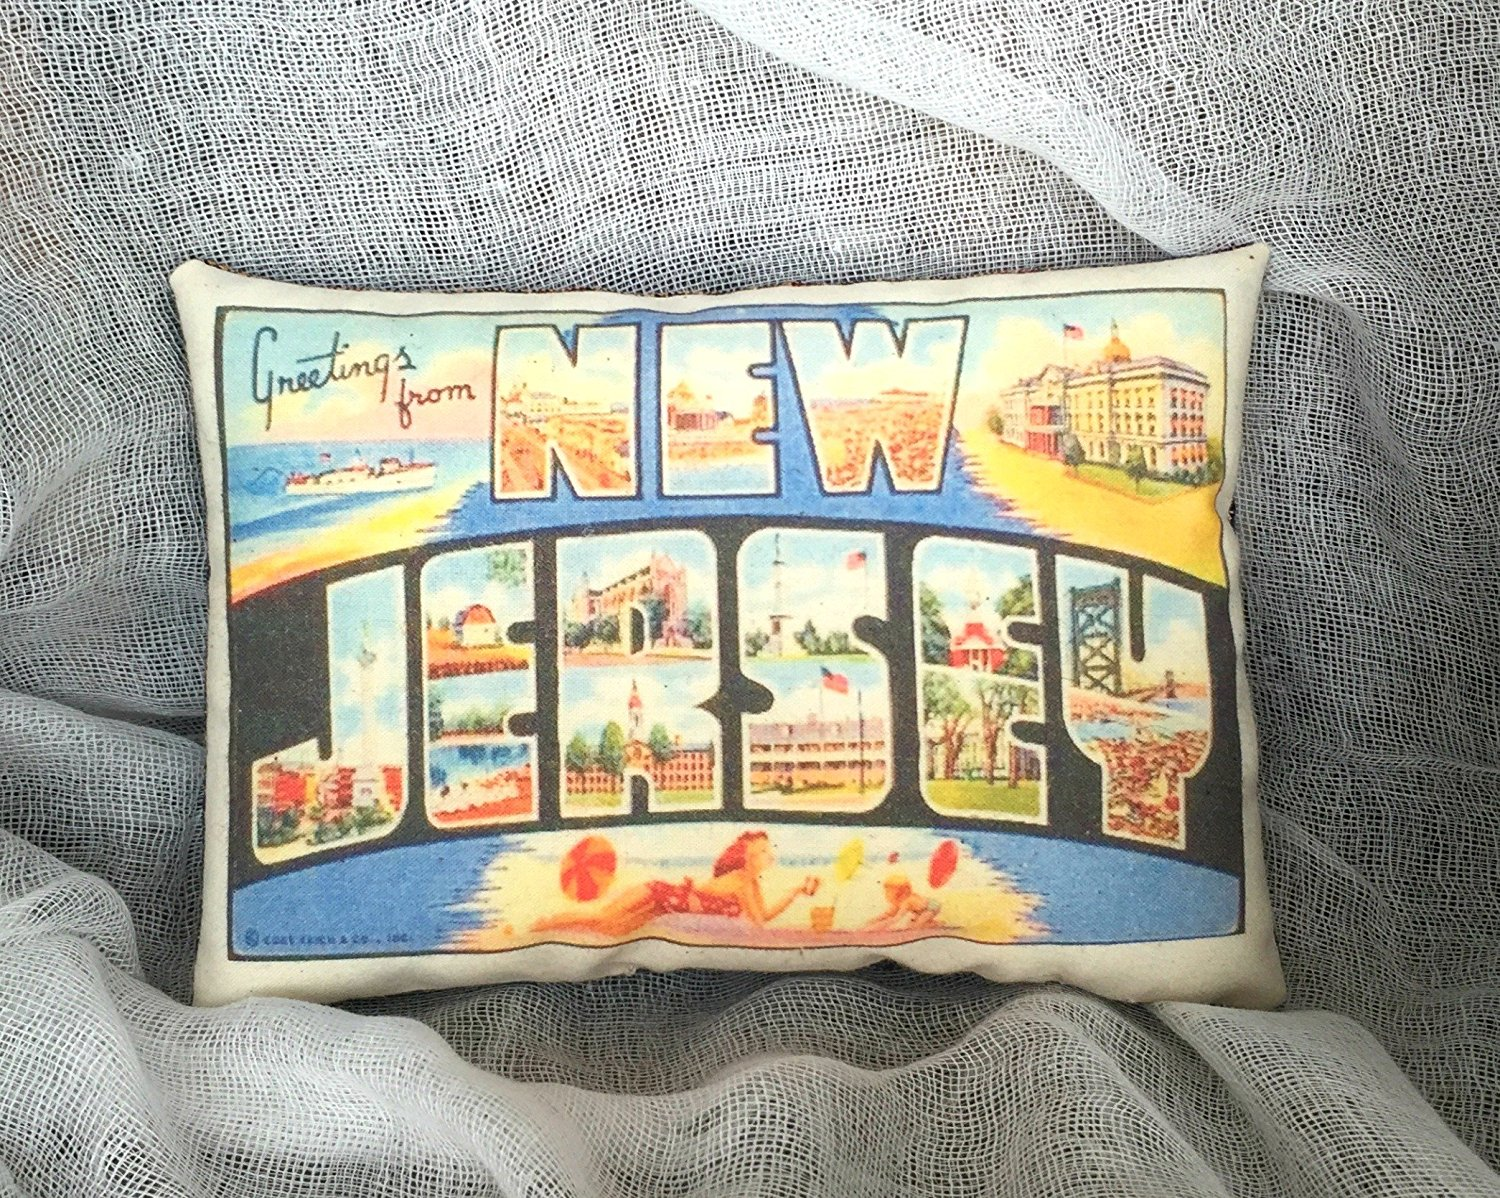 10 handmade gift ideas from new jersey artisans montclair nj patch about cozy expressions negle Image collections